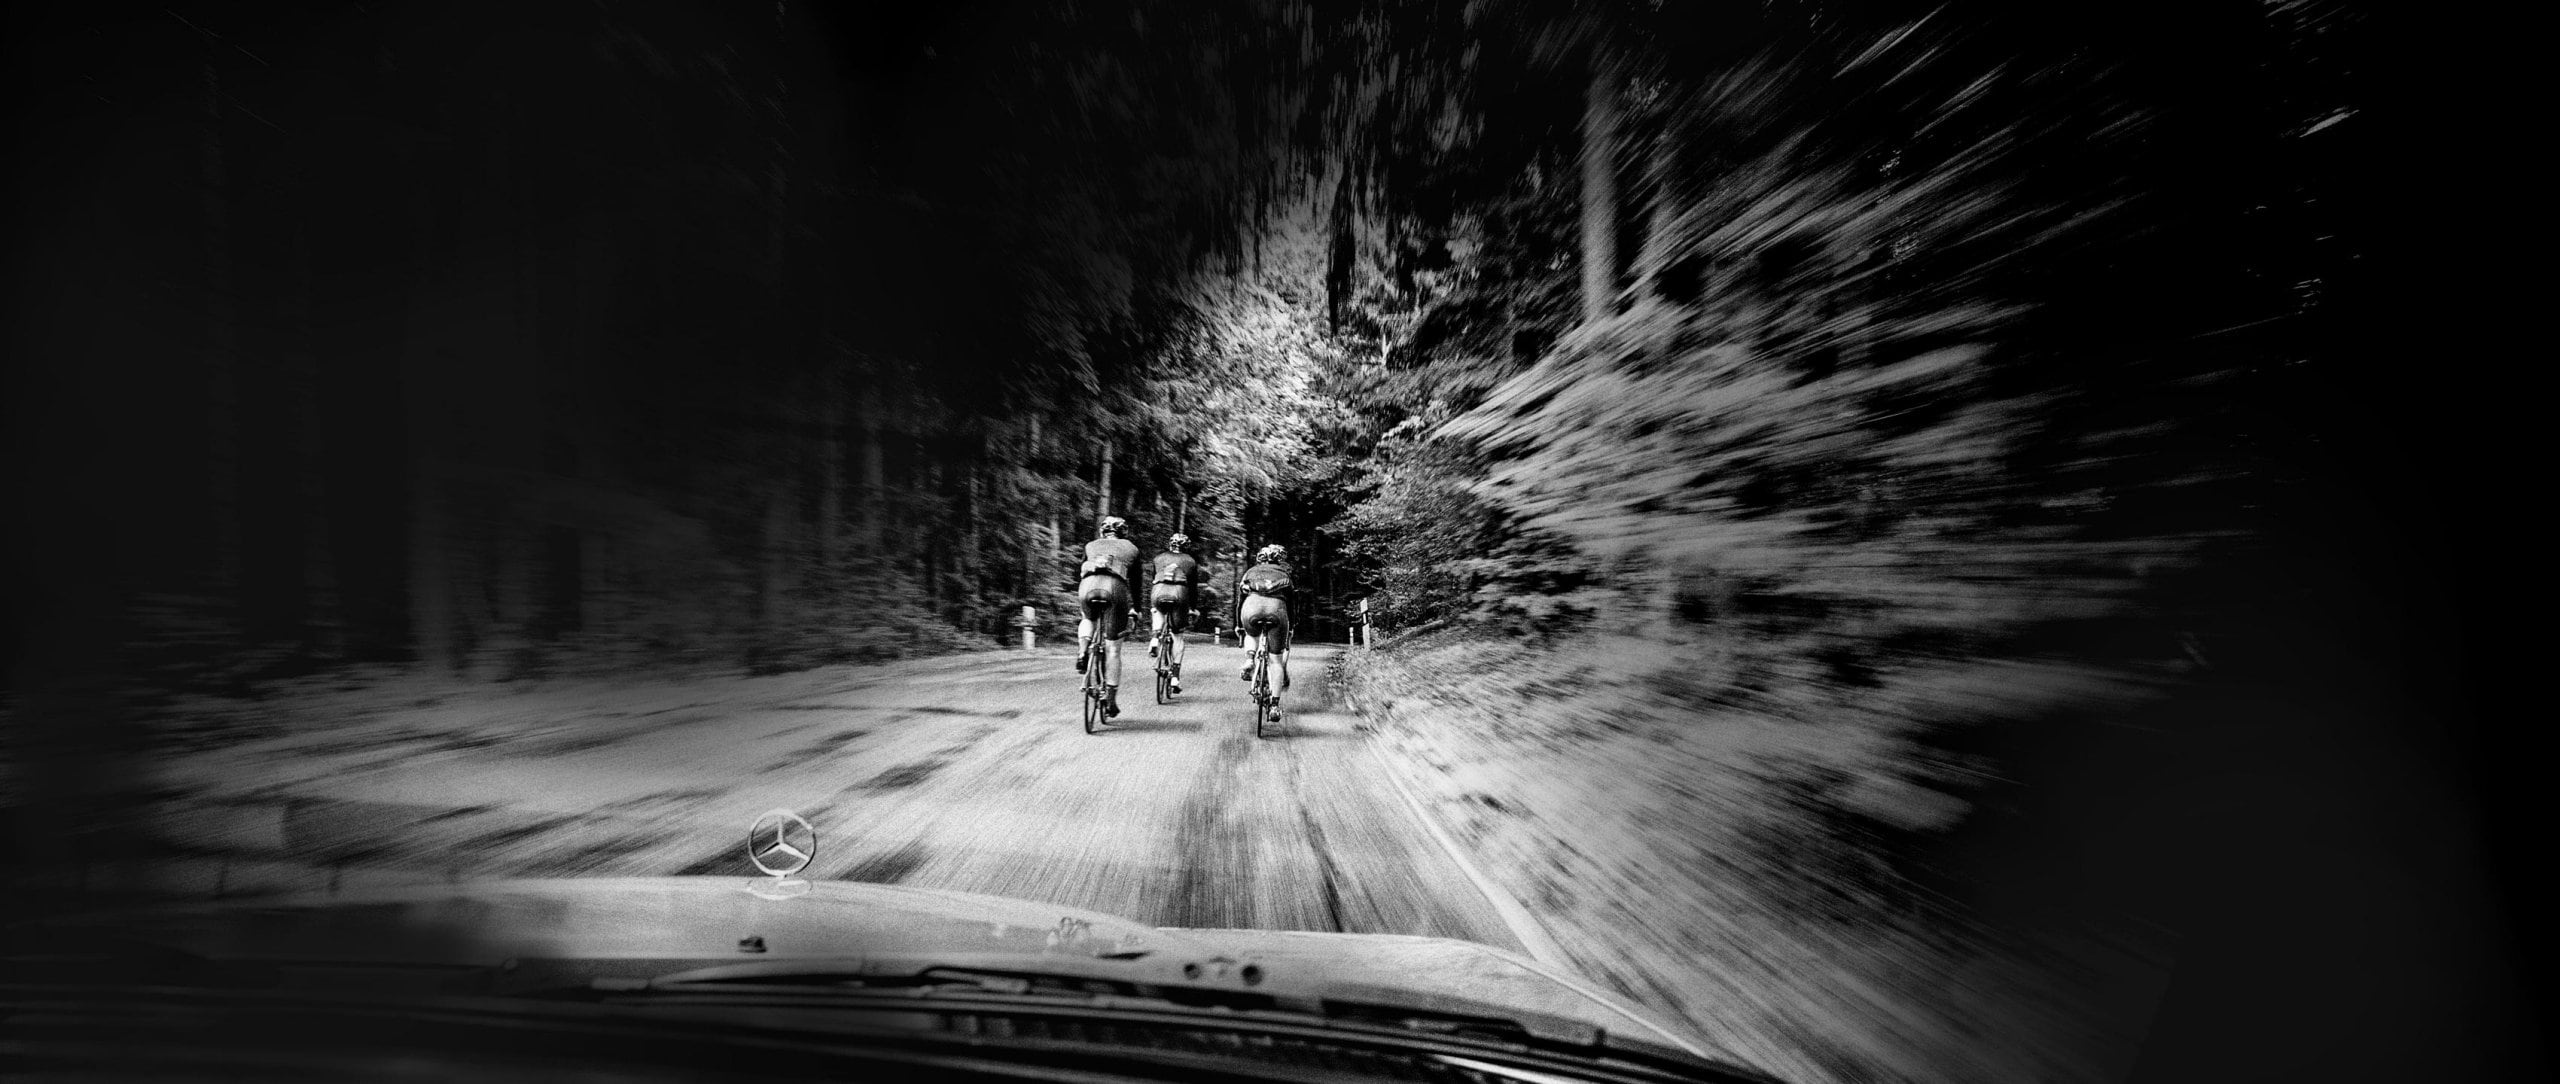 Cool temperatures and damp weather should not frighten cyclists.